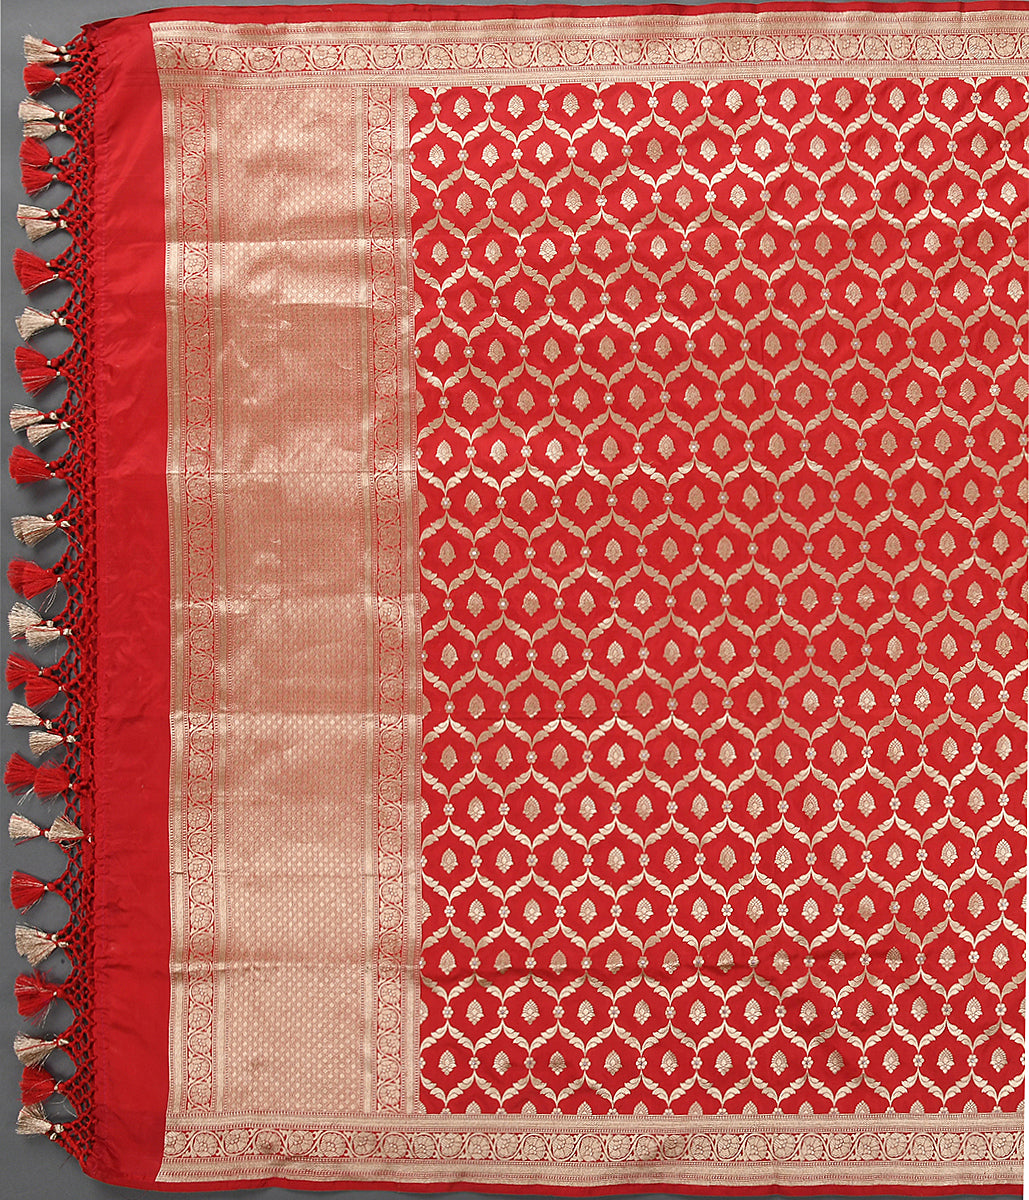 Handwoven Red Katan Silk Jangla Dupatta with Meenakri Jaal